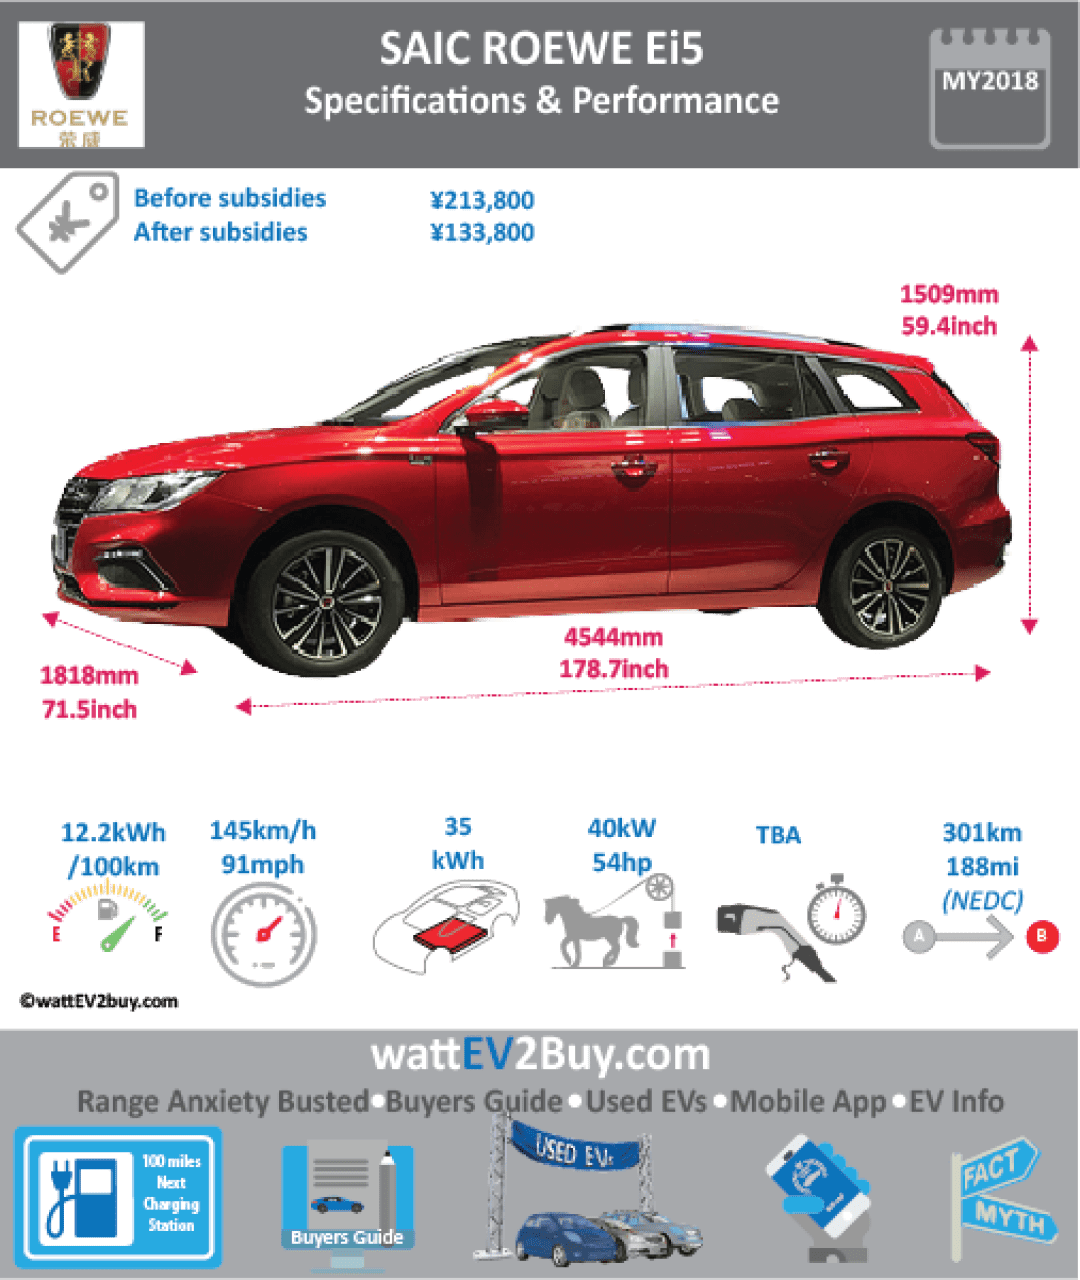 SAIC ROEWE Ei5 EV WAGON SPECS	 wattev2Buy.com	2018 Battery Chemistry	Ternary Battery Capacity kWh	35 Battery Nominal rating kWh	 Voltage V	 Amps Ah	 Cells	 Modules	 Efficiency	 Weight (kg)	265 Cell Type	 SOC	 Cooling	 Cycles	 Battery Type	 Depth of Discharge (DOD)	 Energy Density Wh/kg	140.74 Battery Manufacturer	Shanghai Jie New Power Battery System Co Battery Warranty - years	 Battery Warranty - km	 Battery Warranty - miles	 Battery Electric Range - at constant 38mph	250 Battery Electric Range - at constant 60km/h	400 Battery Electric Range - NEDC Mi	188.125 Battery Electric Range - NEDC km	301 Battery Electric Range - CCM Mi	 Battery Electric Range - CCM km	 Battery Electric Range - EPA Mi	 Battery Electric Range - EPA km	 Electric Top Speed - mph	90.625 Electric Top Speed - km/h	145 Acceleration 0 - 100km/h sec	 Acceleration 0 - 50km/h sec	 Acceleration 0 - 62mph sec	 Acceleration 0 - 60mph sec	 Acceleration 0 - 37.2mph sec	 Wireless Charging	 Direct Current Fast Charge kW	 Charger Efficiency	 Onboard Charger kW	 Onboard Charger Optional kW	 Charging Cord - amps	 Charging Cord - volts	 LV 1 Charge kW	 LV 1 Charge Time (Hours)	 LV 2 Charge kW	 LV 2 Charge Time (Hours)	 LV 3 CCS/Combo kW	 LV 3 Charge Time (min to 70%)	 LV 3 Charge Time (min to 80%)	 LV 3 Charge Time (mi)	 LV 3 Charge Time (km)	 Supercharger	 Charging System kW	 Charger Output	 Charge Connector	 Power Outlet kW	 Power Outlet Amps	 MPGe Combined - miles	 MPGe Combined - km	 MPGe City - miles	 MPGe City - km	 MPGe Highway - miles	 MPGe Highway - km	 Max Power - hp (Electric Max)	116 Max Power - kW  (Electric Max)	85 Max Torque - lb.ft  (Electric Max)	 Max Torque - N.m  (Electric Max)	 Drivetrain	 Generator	 Motor Type	 Electric Motor Manufacturer	 Electric Motor Output kW	40 Electric Motor Output hp	53.6408 Transmission	 Electric Motor - Rear	 Max Power - hp (Rear)	 Max Power - kW (Rear)	 Max Torque - lb.ft (Rear)	 Max Torque - N.m (Rear)	 Electric Motor - Front	 Max Power - hp (Front)	 Max Power - kW (Front)	 Max Torque - lb.ft (Front)	 Max Torque - N.m (Front)	 Energy Consumption kWh/100km	12.2 Energy Consumption kWh/100miles	 Deposit	 GB Battery Lease per month	 EU Battery Lease per month	 MSRP (expected)	 EU MSRP (before incentives & destination)	 GB MSRP (before incentives & destination)	 US MSRP (before incentives & destination)	 CHINA MSRP (before incentives & destination)	 MSRP after incentives	 Vehicle	 Trims	 Doors	 Seating	 Dimensions	 Luggage (L)	 GVWR (kg)	1859 GVWR (lbs)	 Curb Weight (kg)	1420 Curb Weight (lbs)	 Payload Capacity (kg)	 Payload Capacity (lbs)	 Towing Capacity (lbs)	 Max Load Height (m)	 Ground Clearance (inc)	 Ground Clearance (mm)	 Lenght (mm)	4544 Width (mm)	1818 Height (mm)	1509 Wheelbase (mm)	2665 Lenght (inc)	178.7 Width (inc)	71.5 Height (inc)	59.4 Wheelbase (inc)	104.8 Other	 Utility Factor	 Auto Show Unveil	 Availability	 Market	 Segment	 Class	 Safety Level	 Unveiled	 Relaunch	 First Delivery	 Chassis designed	 Based On	 AKA	 Self-Driving System	 SAE Autonomous Level	 Connectivity	 Unique	 Extras	 Incentives	 Home Charge Installation	 Public Charging	 Subsidy	 Chinese Name	荣威 Ei5 Model Code	CSA7002FBEV1 WEBSITE